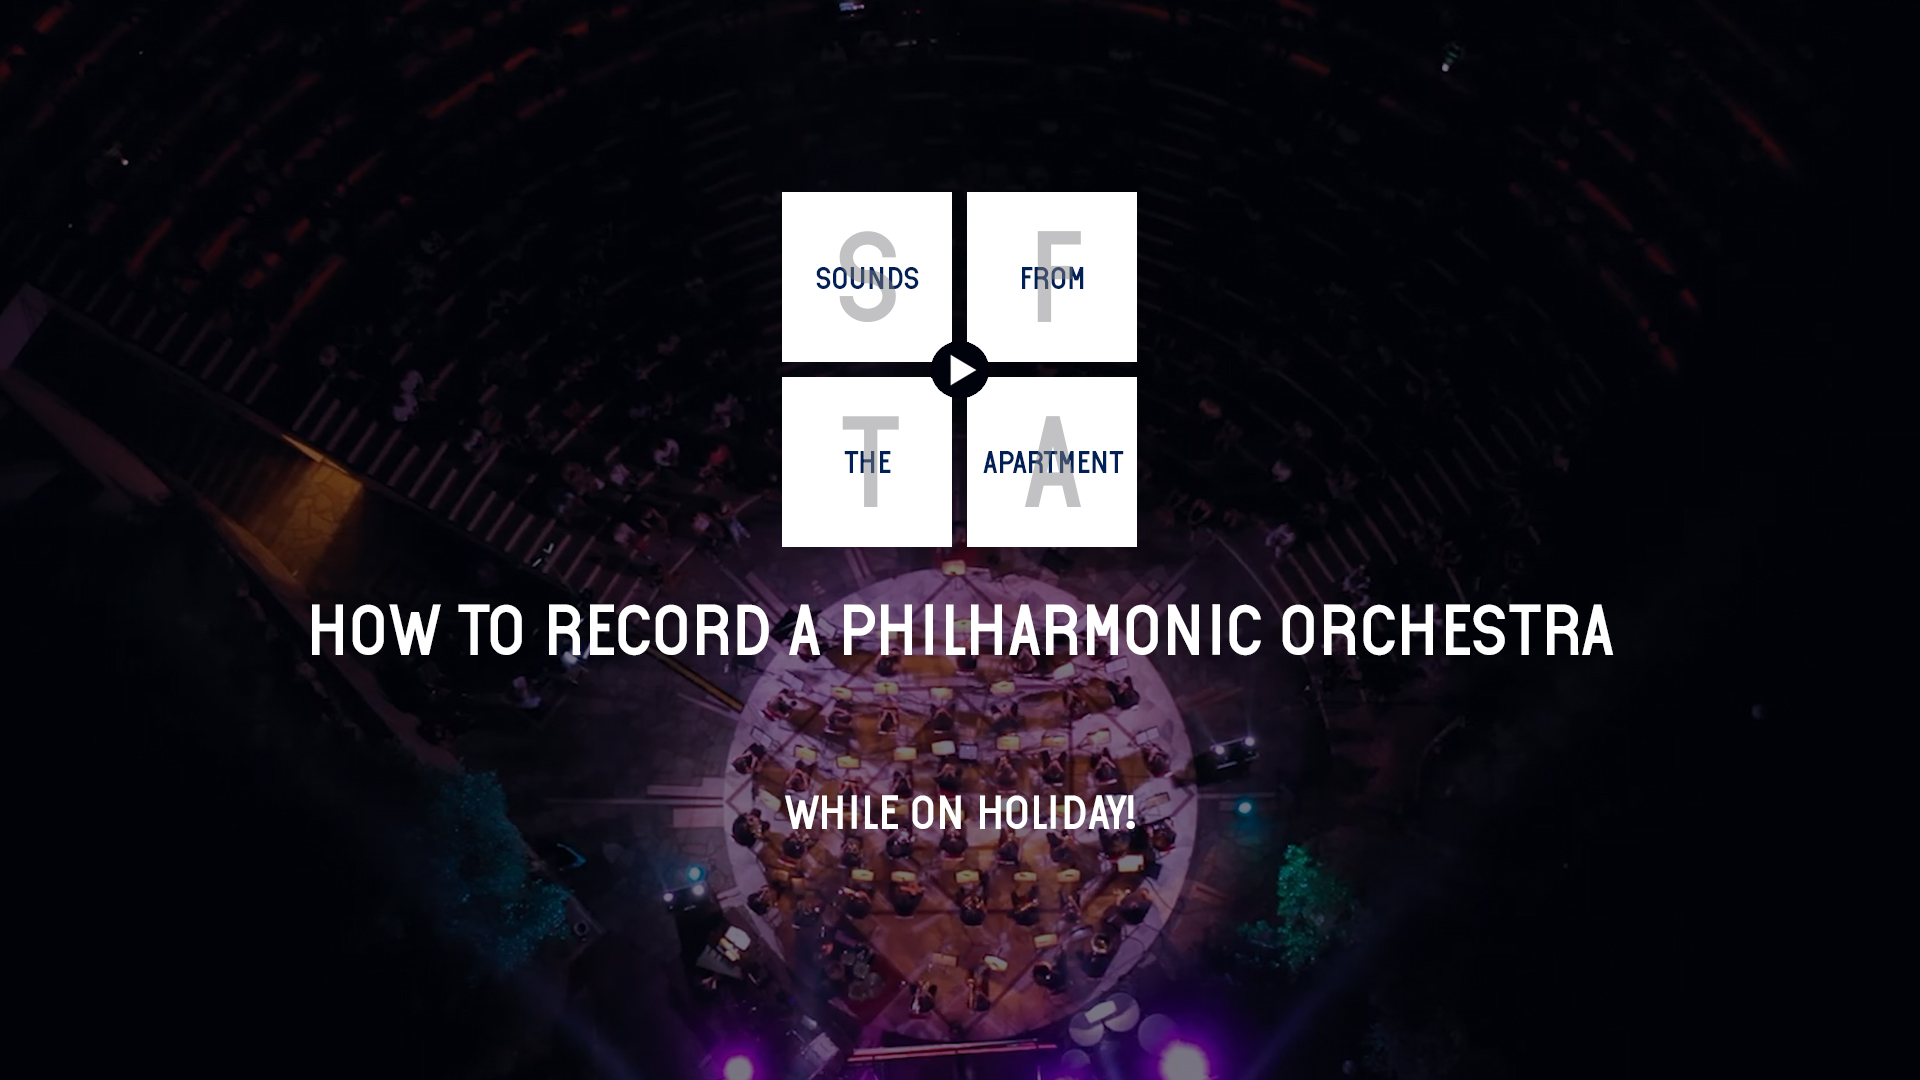 how to record to a philharmonic orchestra